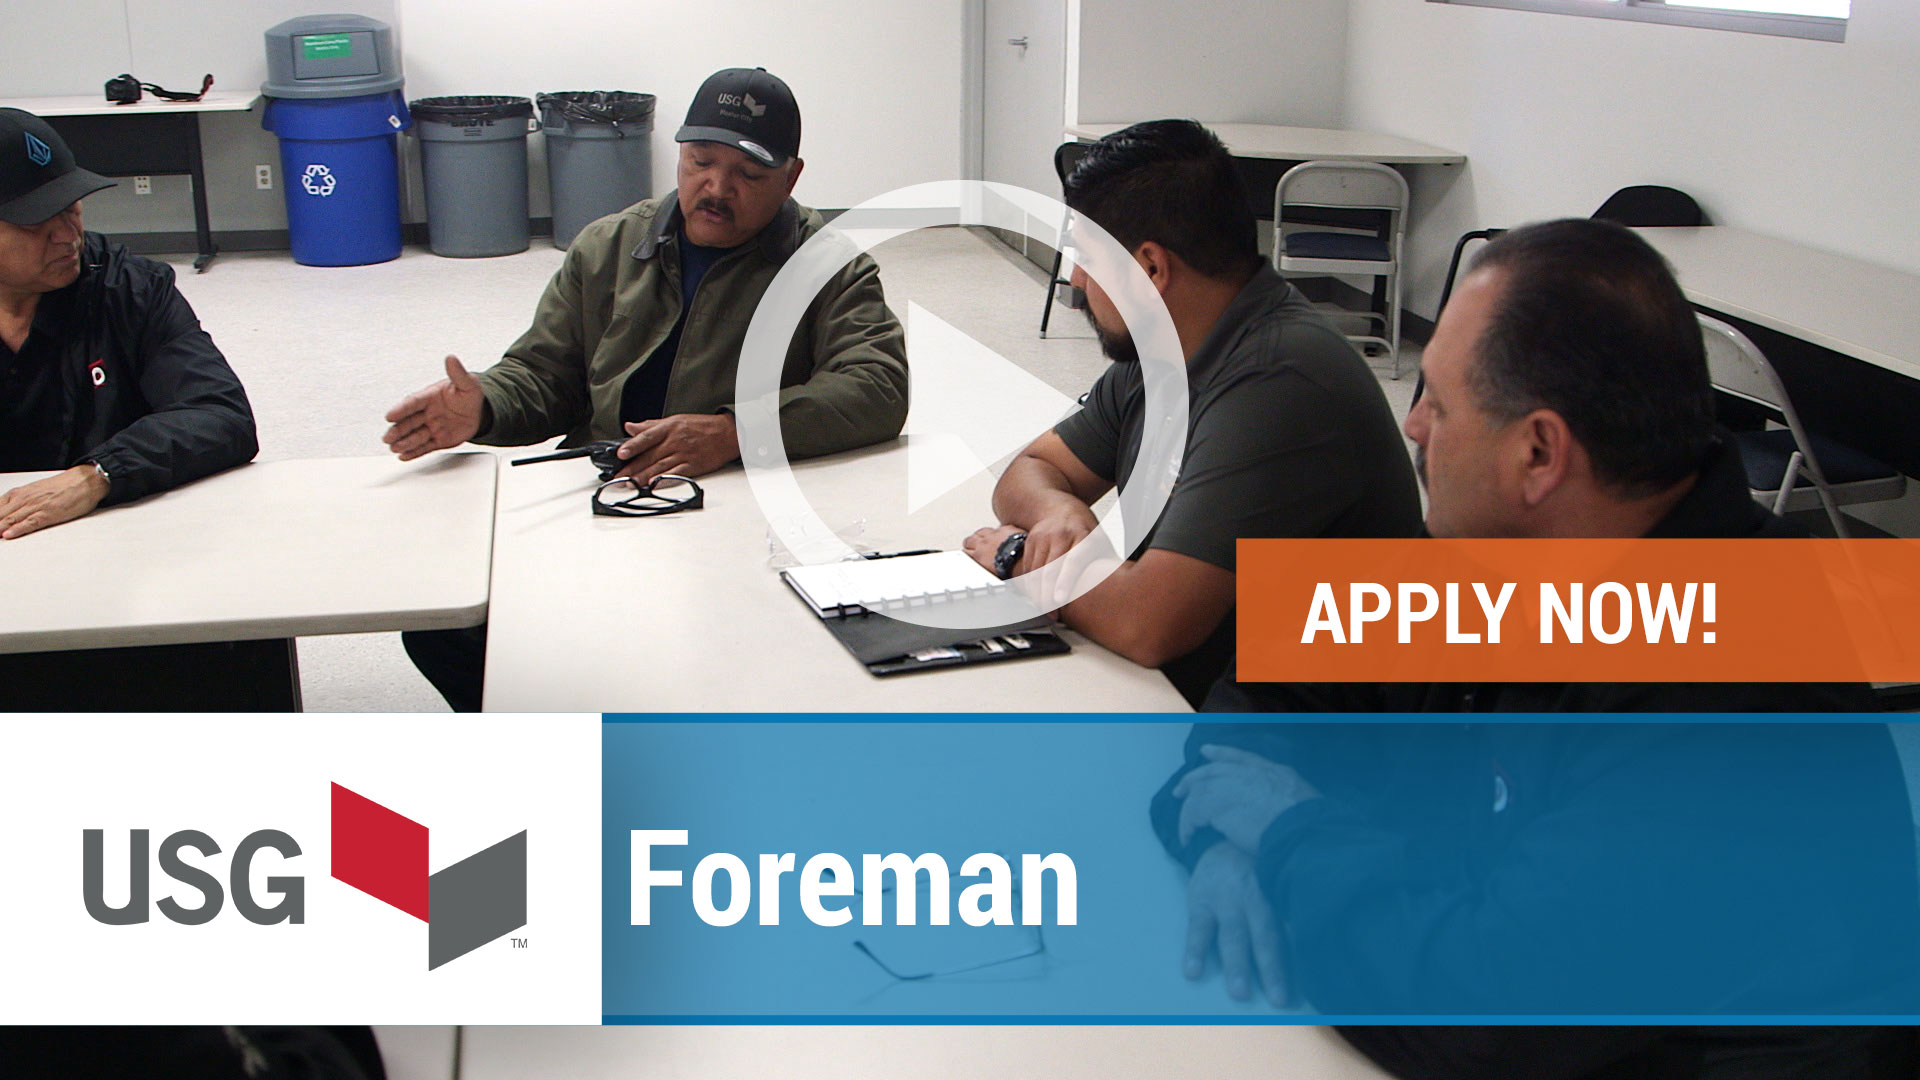 Watch our careers video for available job opening Foreman in Bridgeport, AL, USA